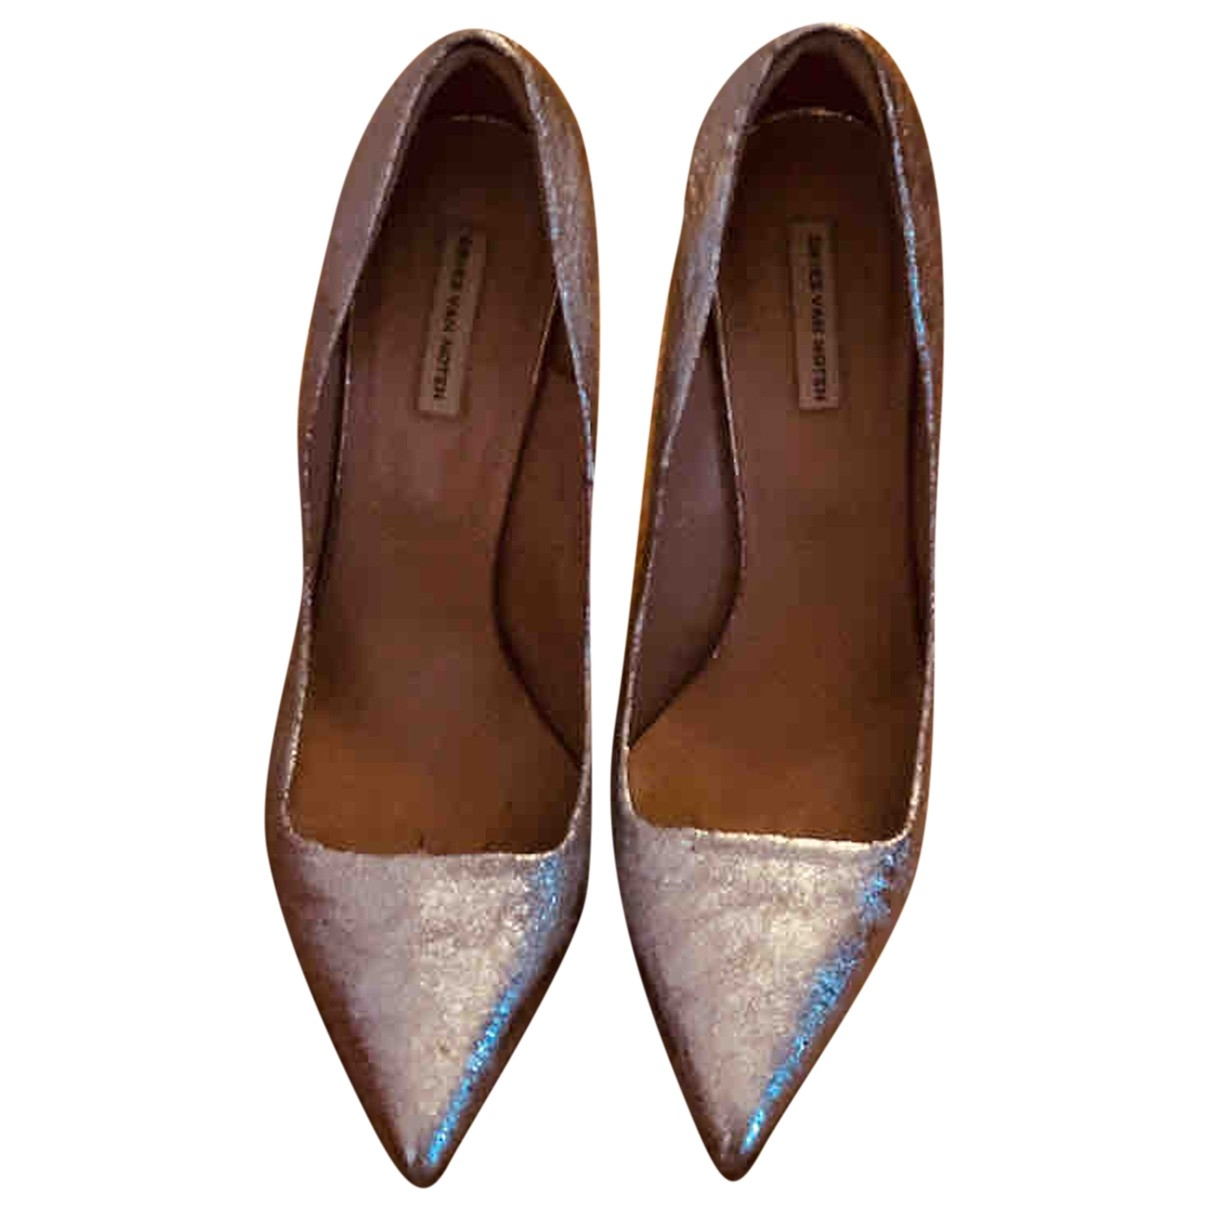 Dries Van Noten \N Pumps in  Silber Mit Pailletten